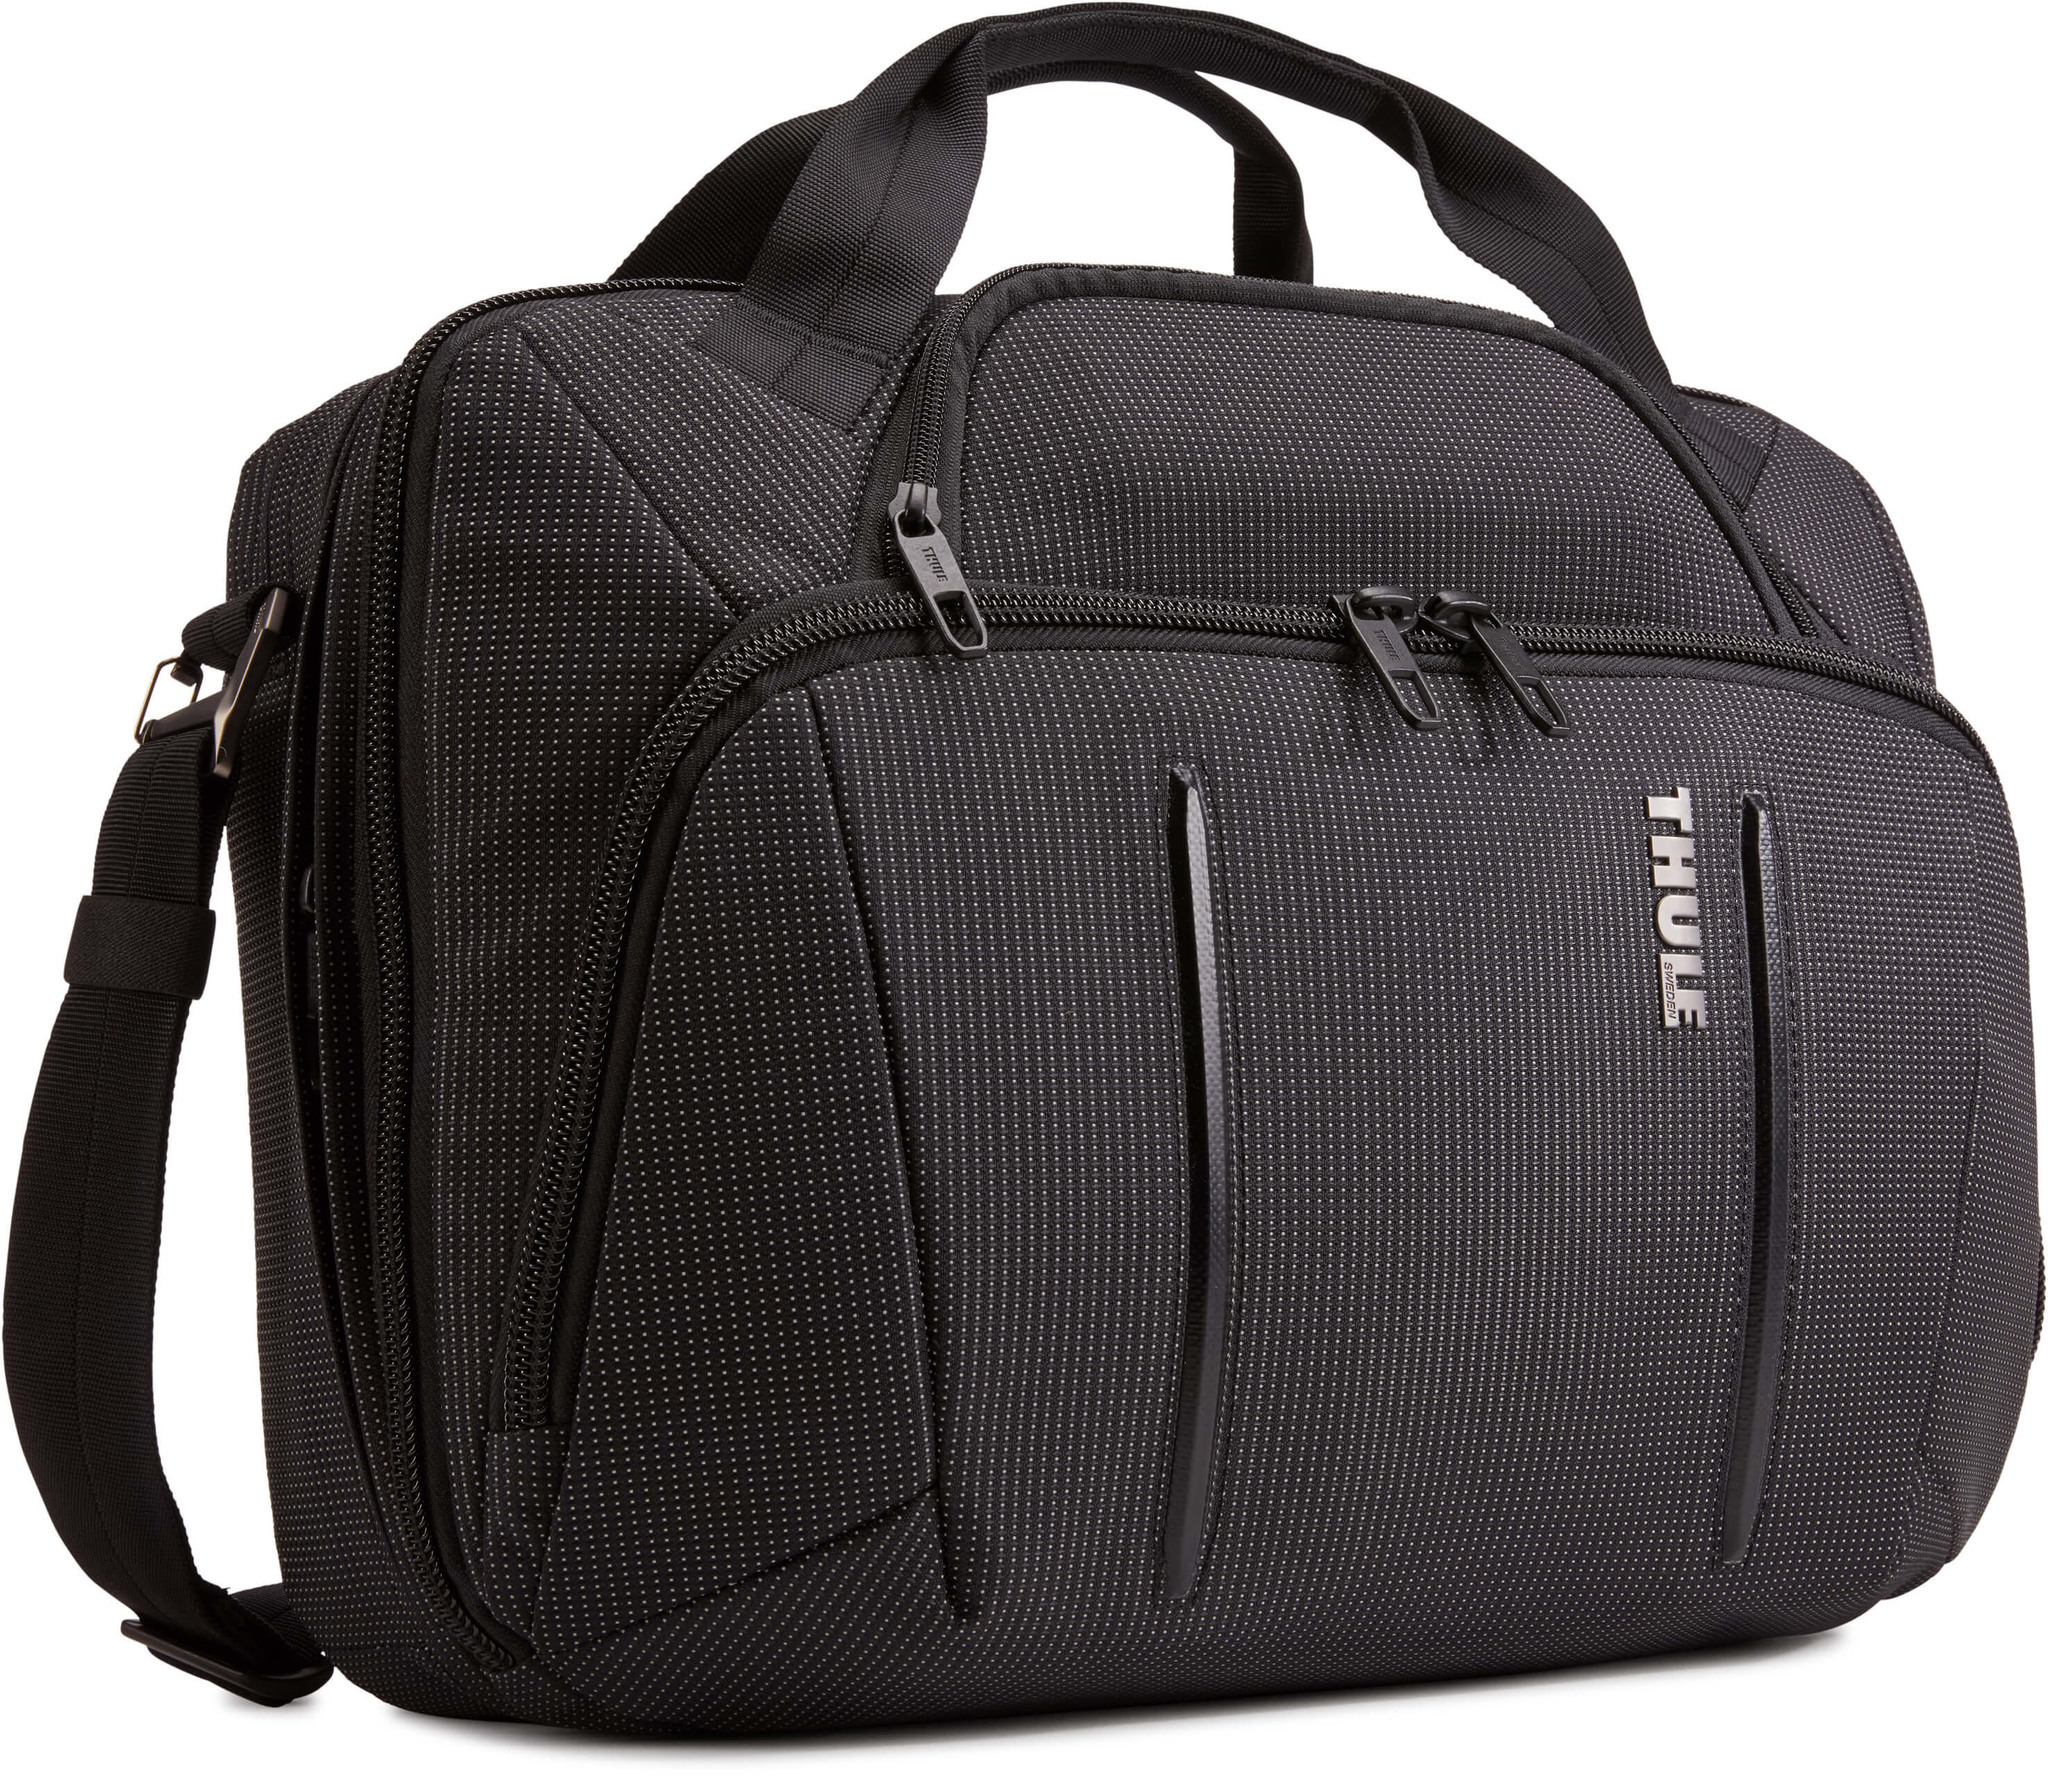 "Thule Crossover Сумка для ноутбука Thule Crossover 2 Laptop Bag 15.6"" Thule_Crossover_2_C2LB116_Black_Iso_3203842.jpeg"